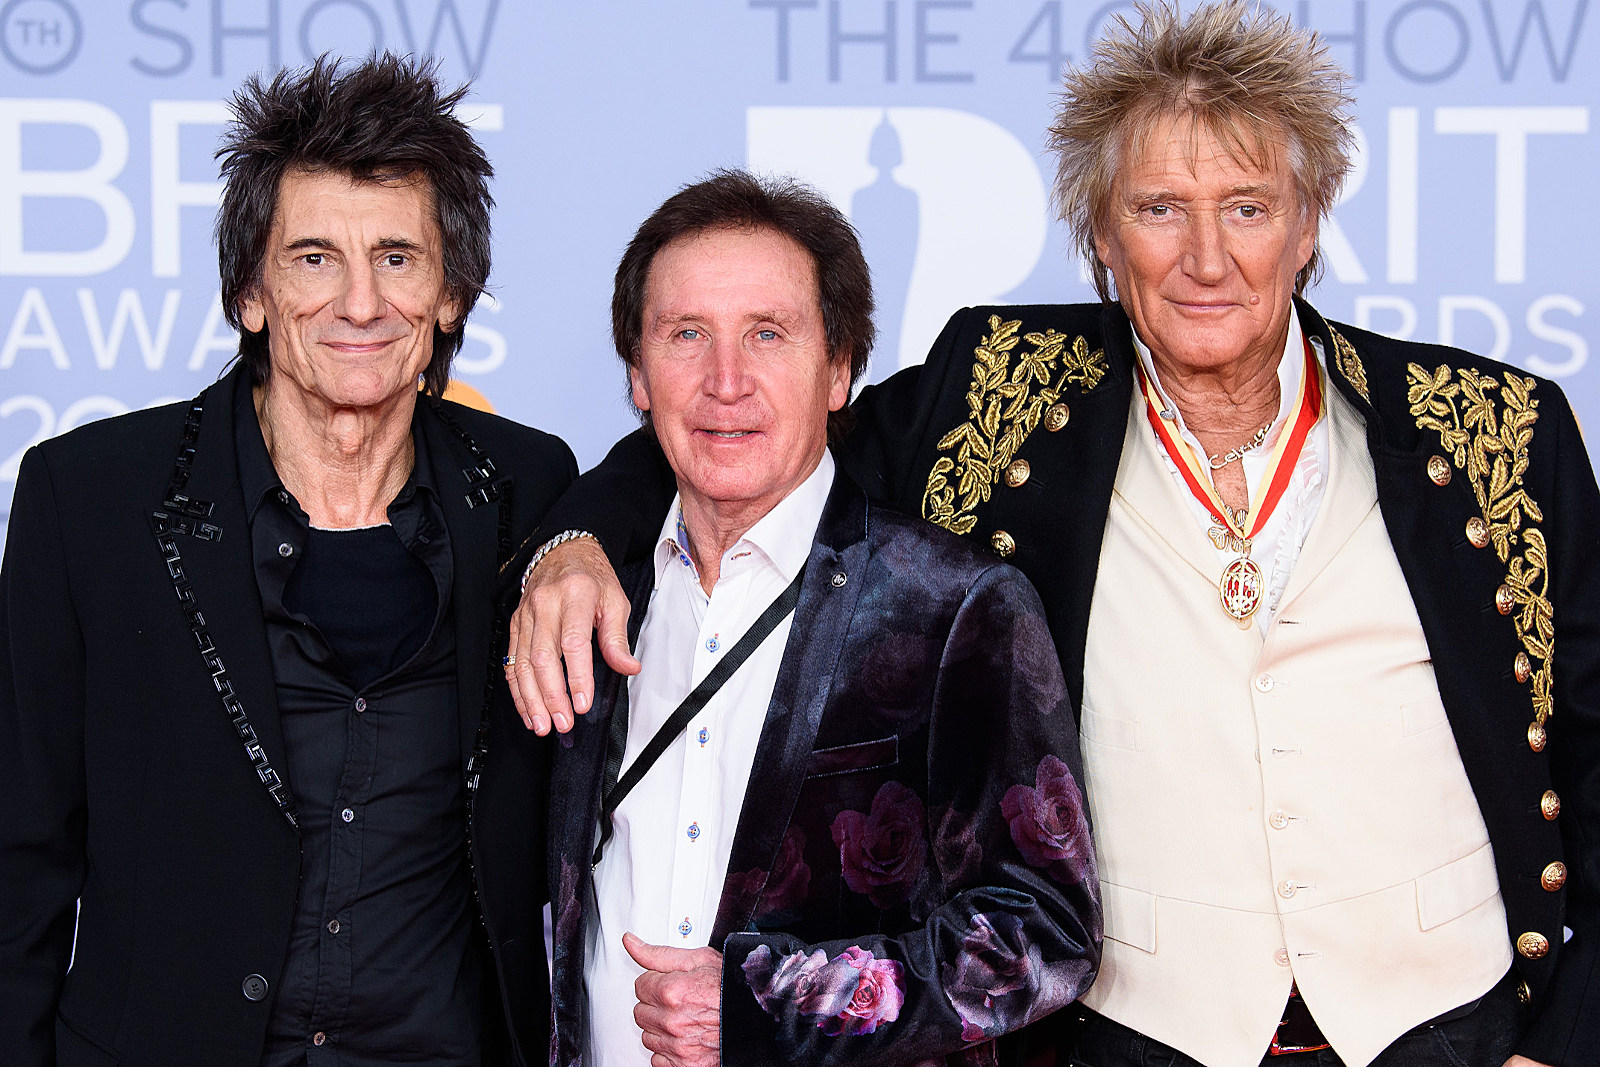 Kenney Jones Says Faces Have Recorded 'About 14 Songs'